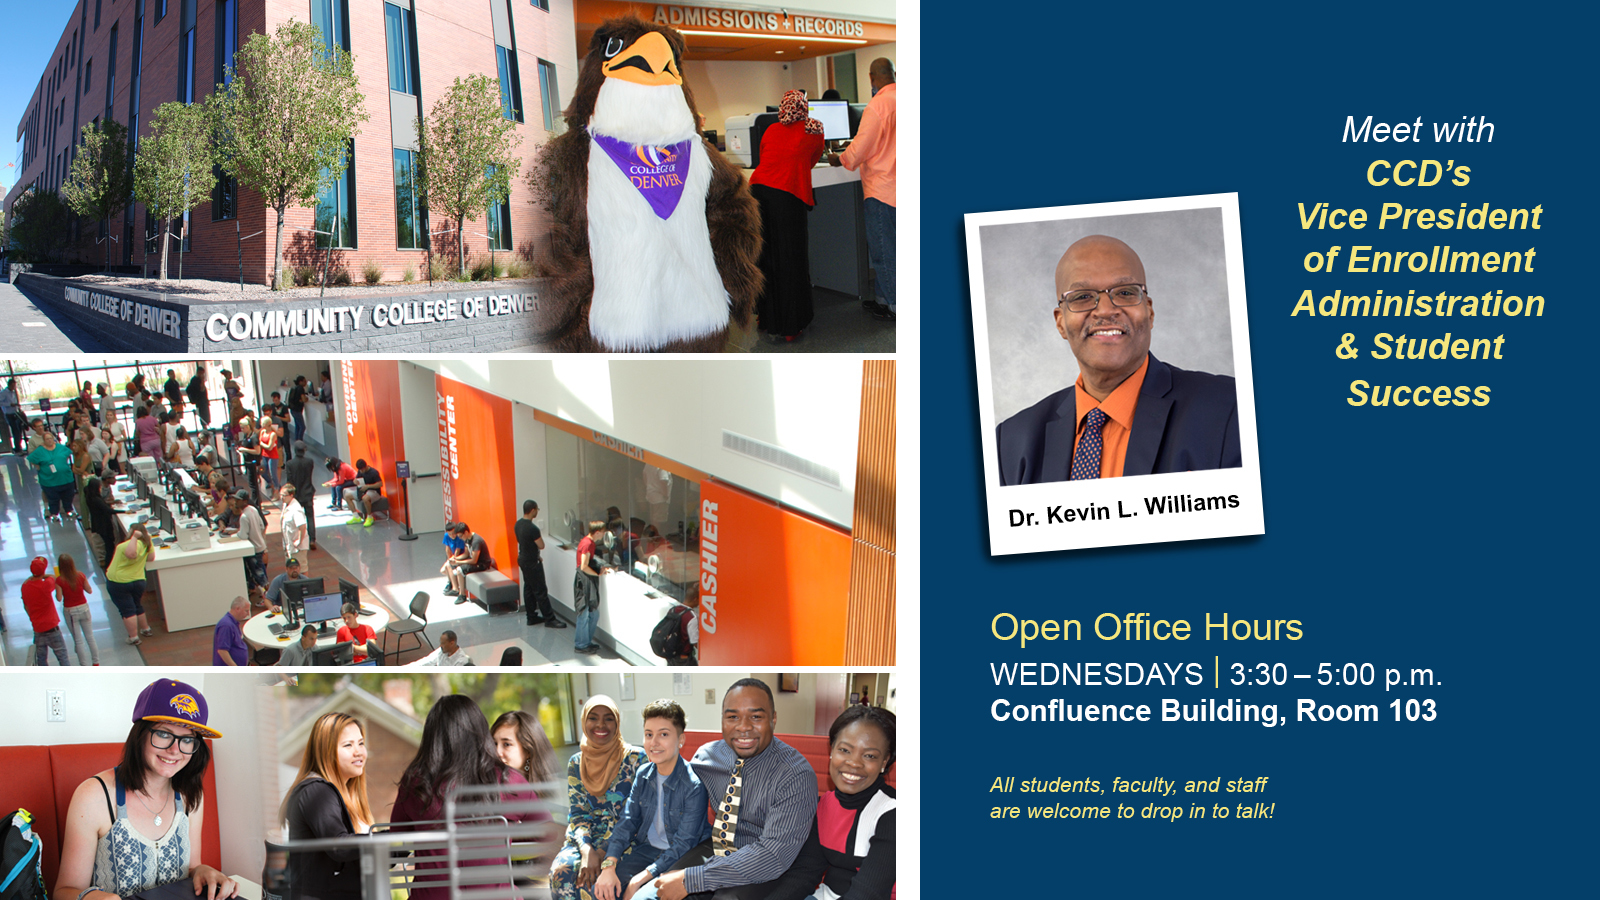 images of students on campus and text with office hours